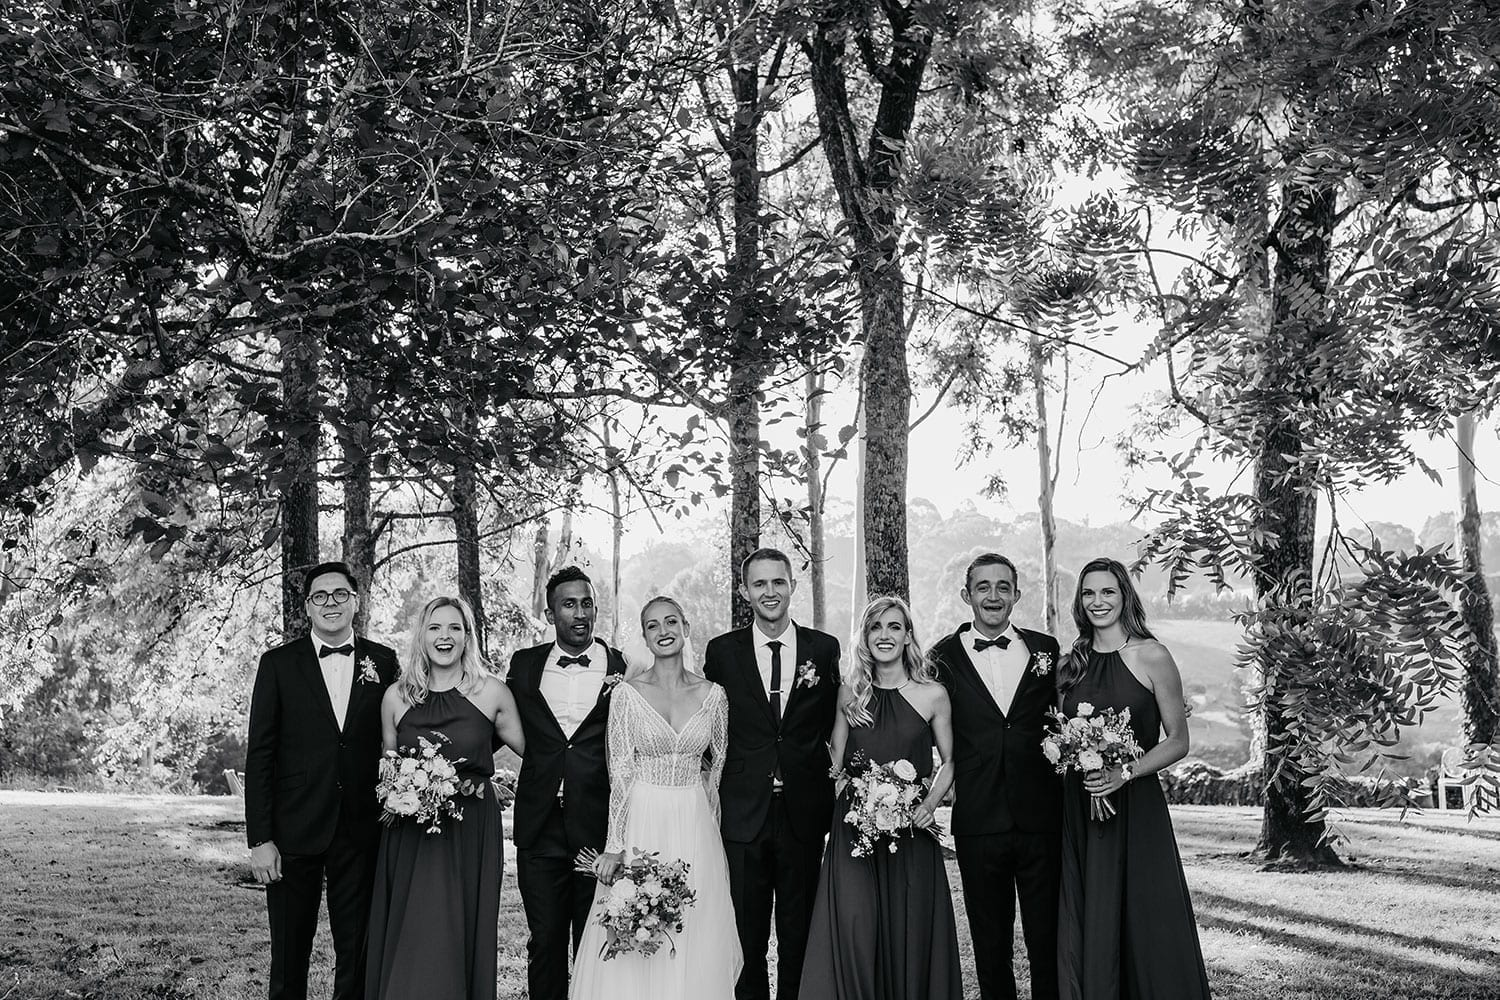 Vinka Design Features Real Weddings - Bride in custom made gown with bold lace bodice with fitted, long, beaded lace sleeves and floating skirt. With bridal party in wooded area. Black and white